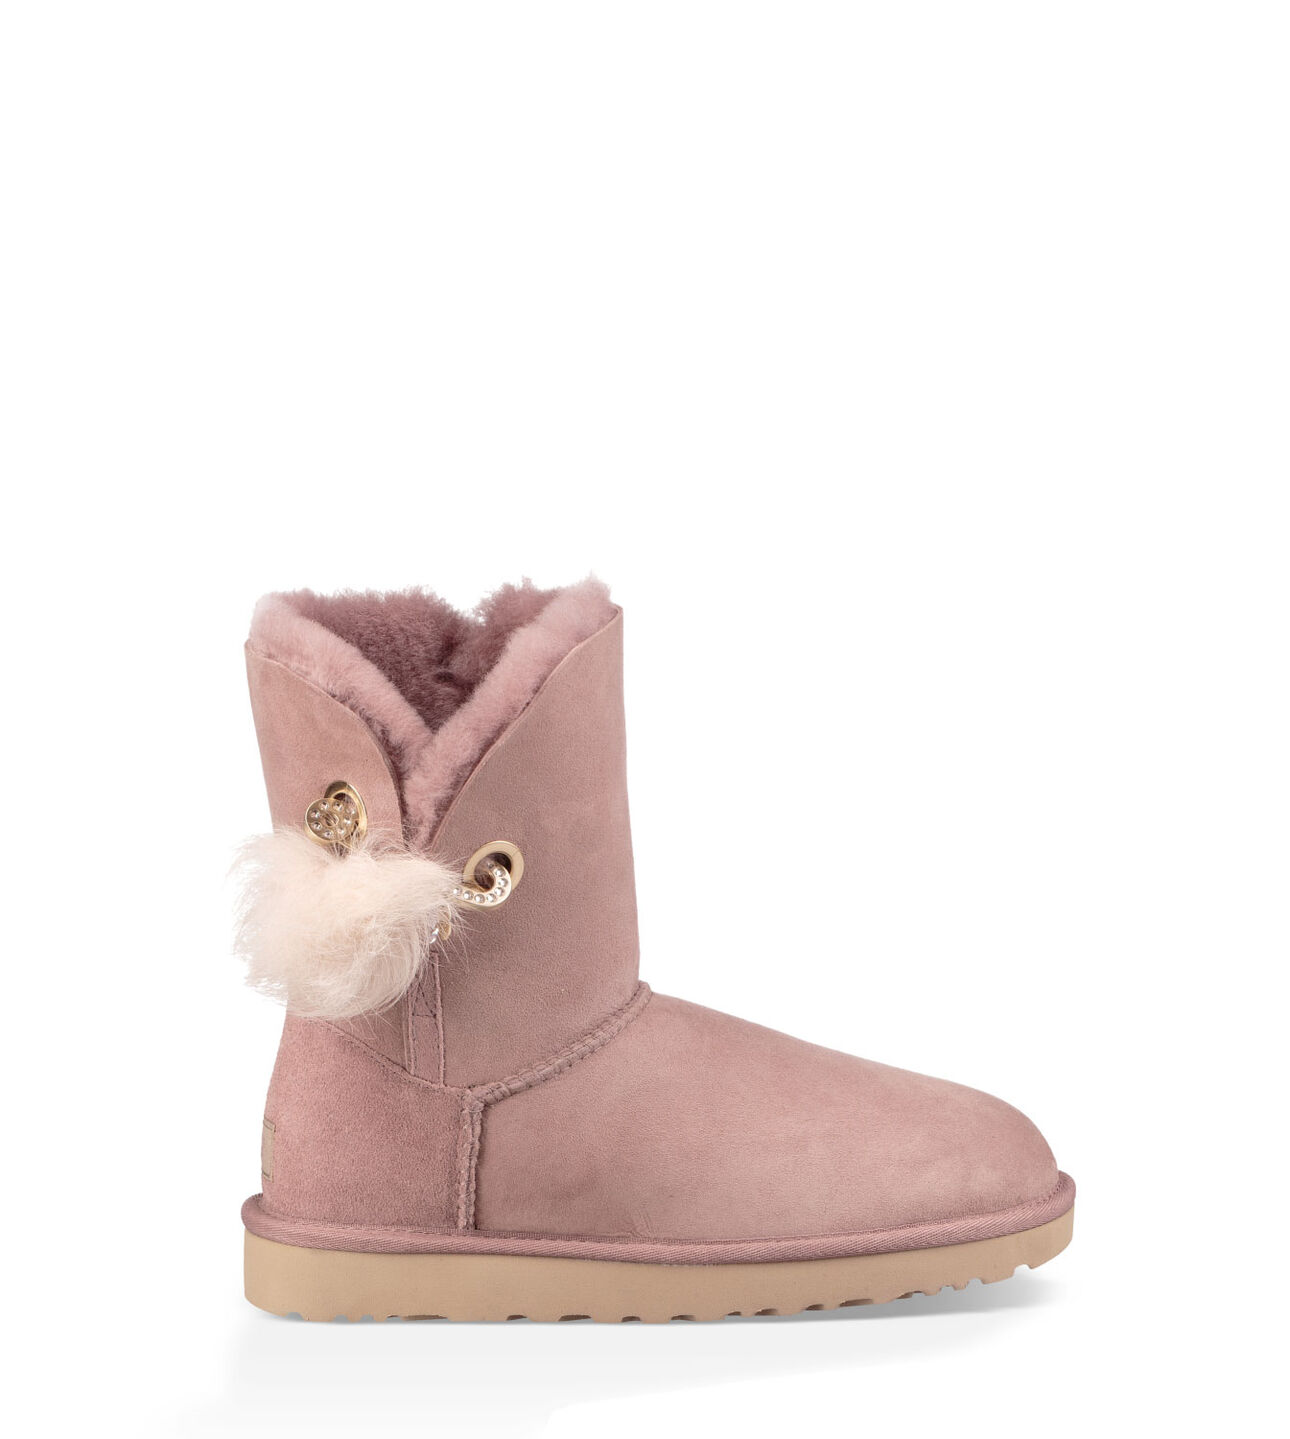 035d3685139c2 Ugg Boots With Pom Poms